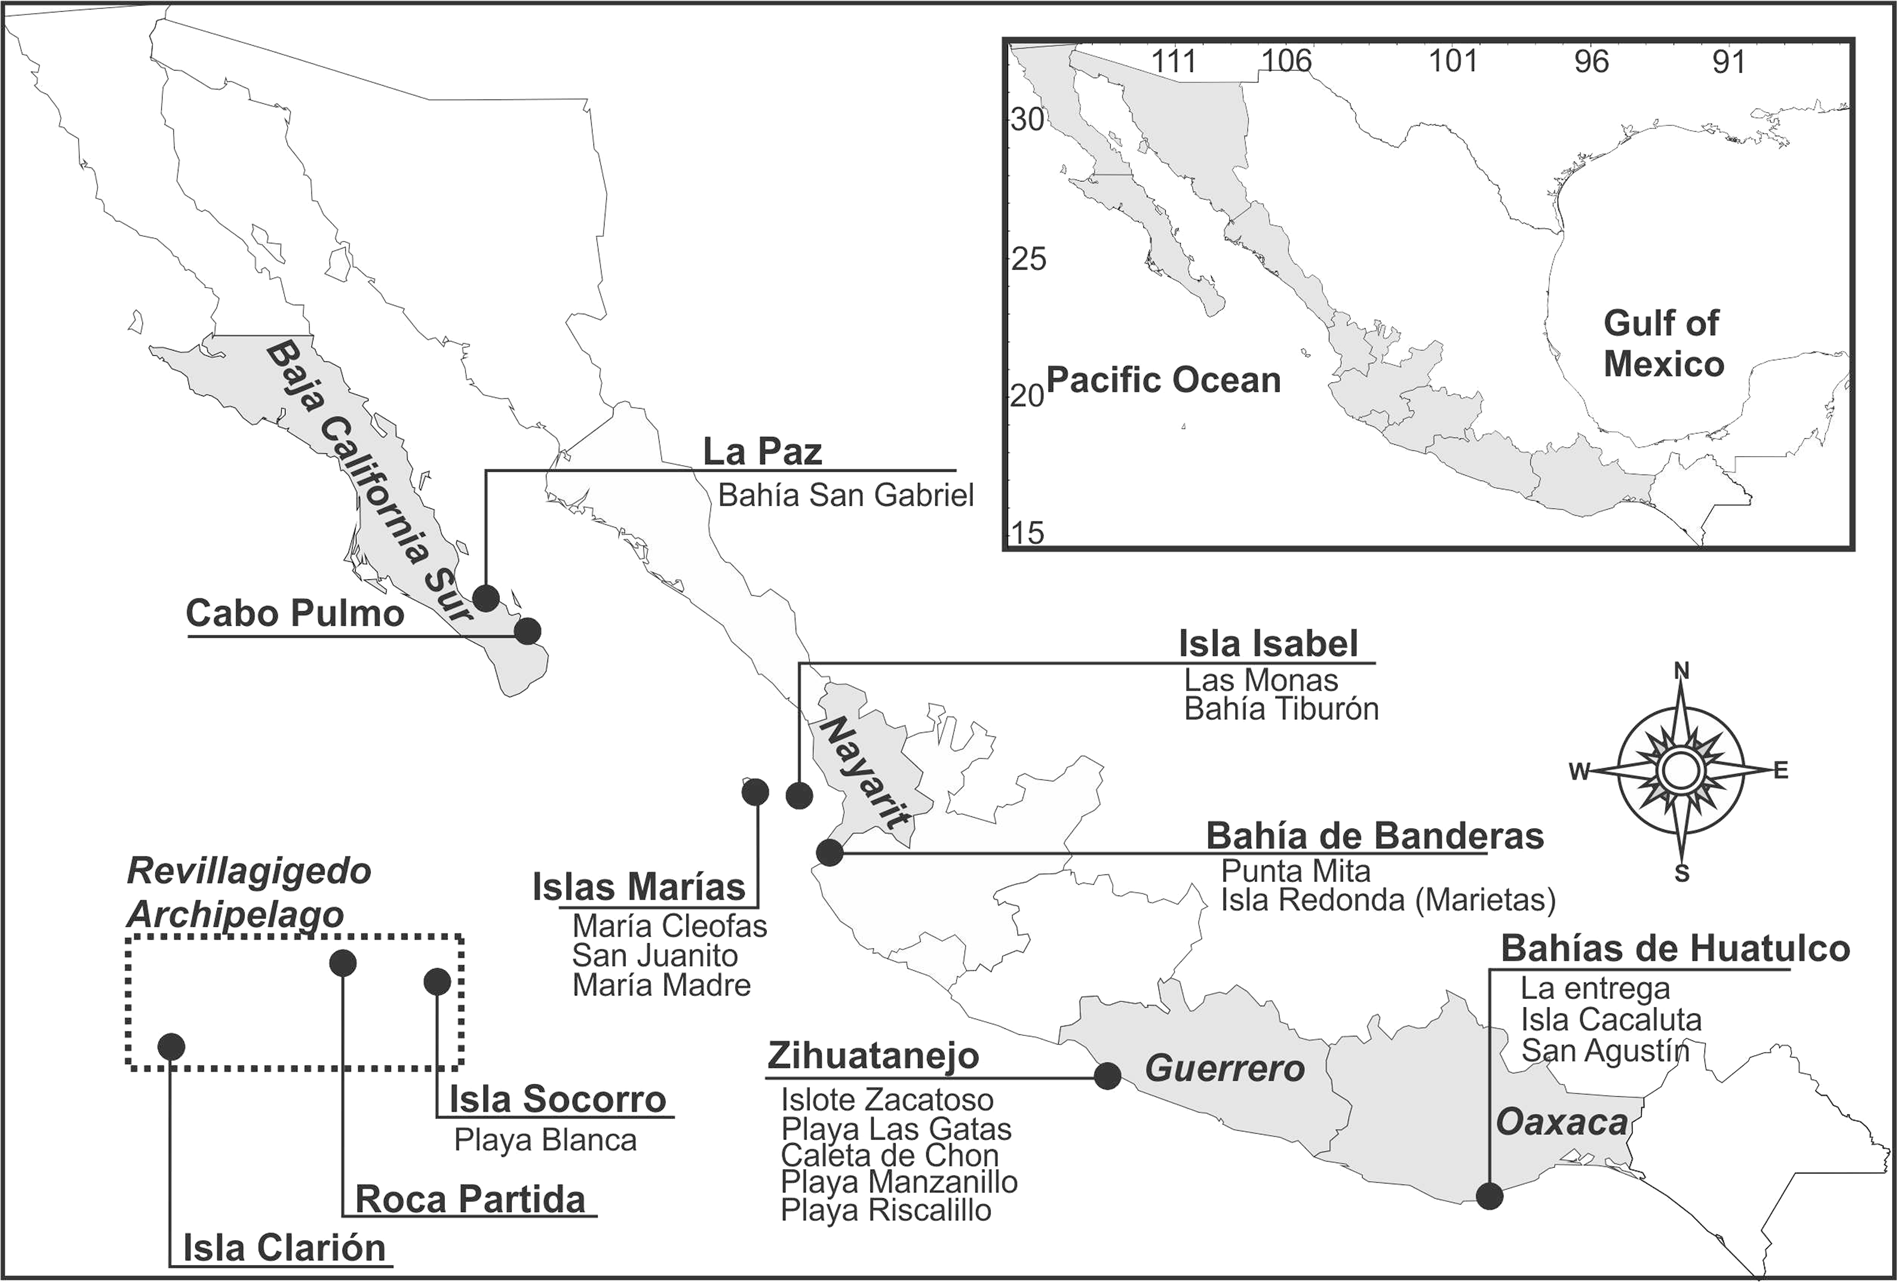 Sponge diversity in Eastern Tropical Pacific coral reefs: an